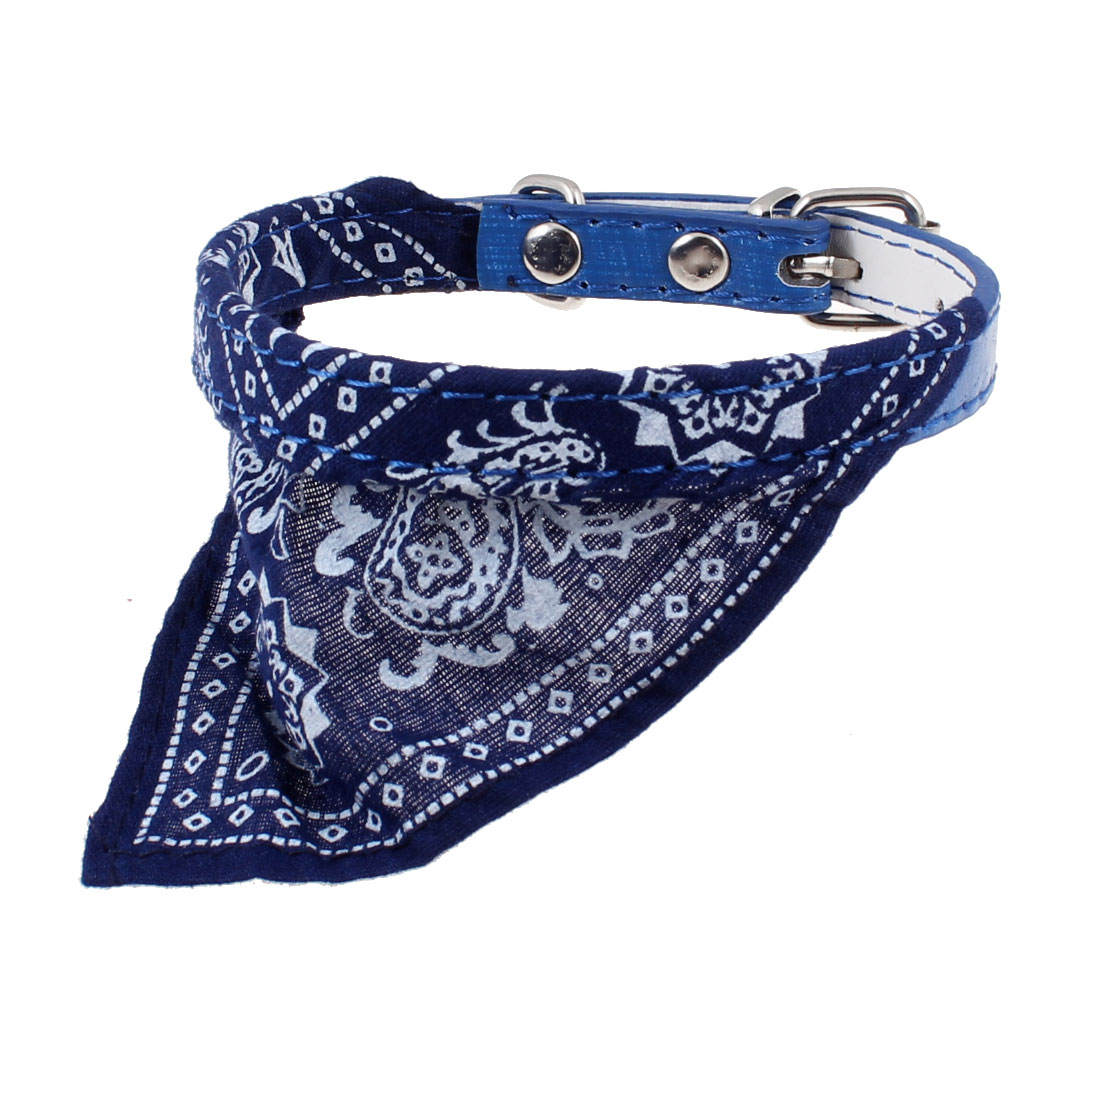 "One Pin 0.4"" Width Adjustable Pet Dog Triangle Bandana Collar Rope Blue"